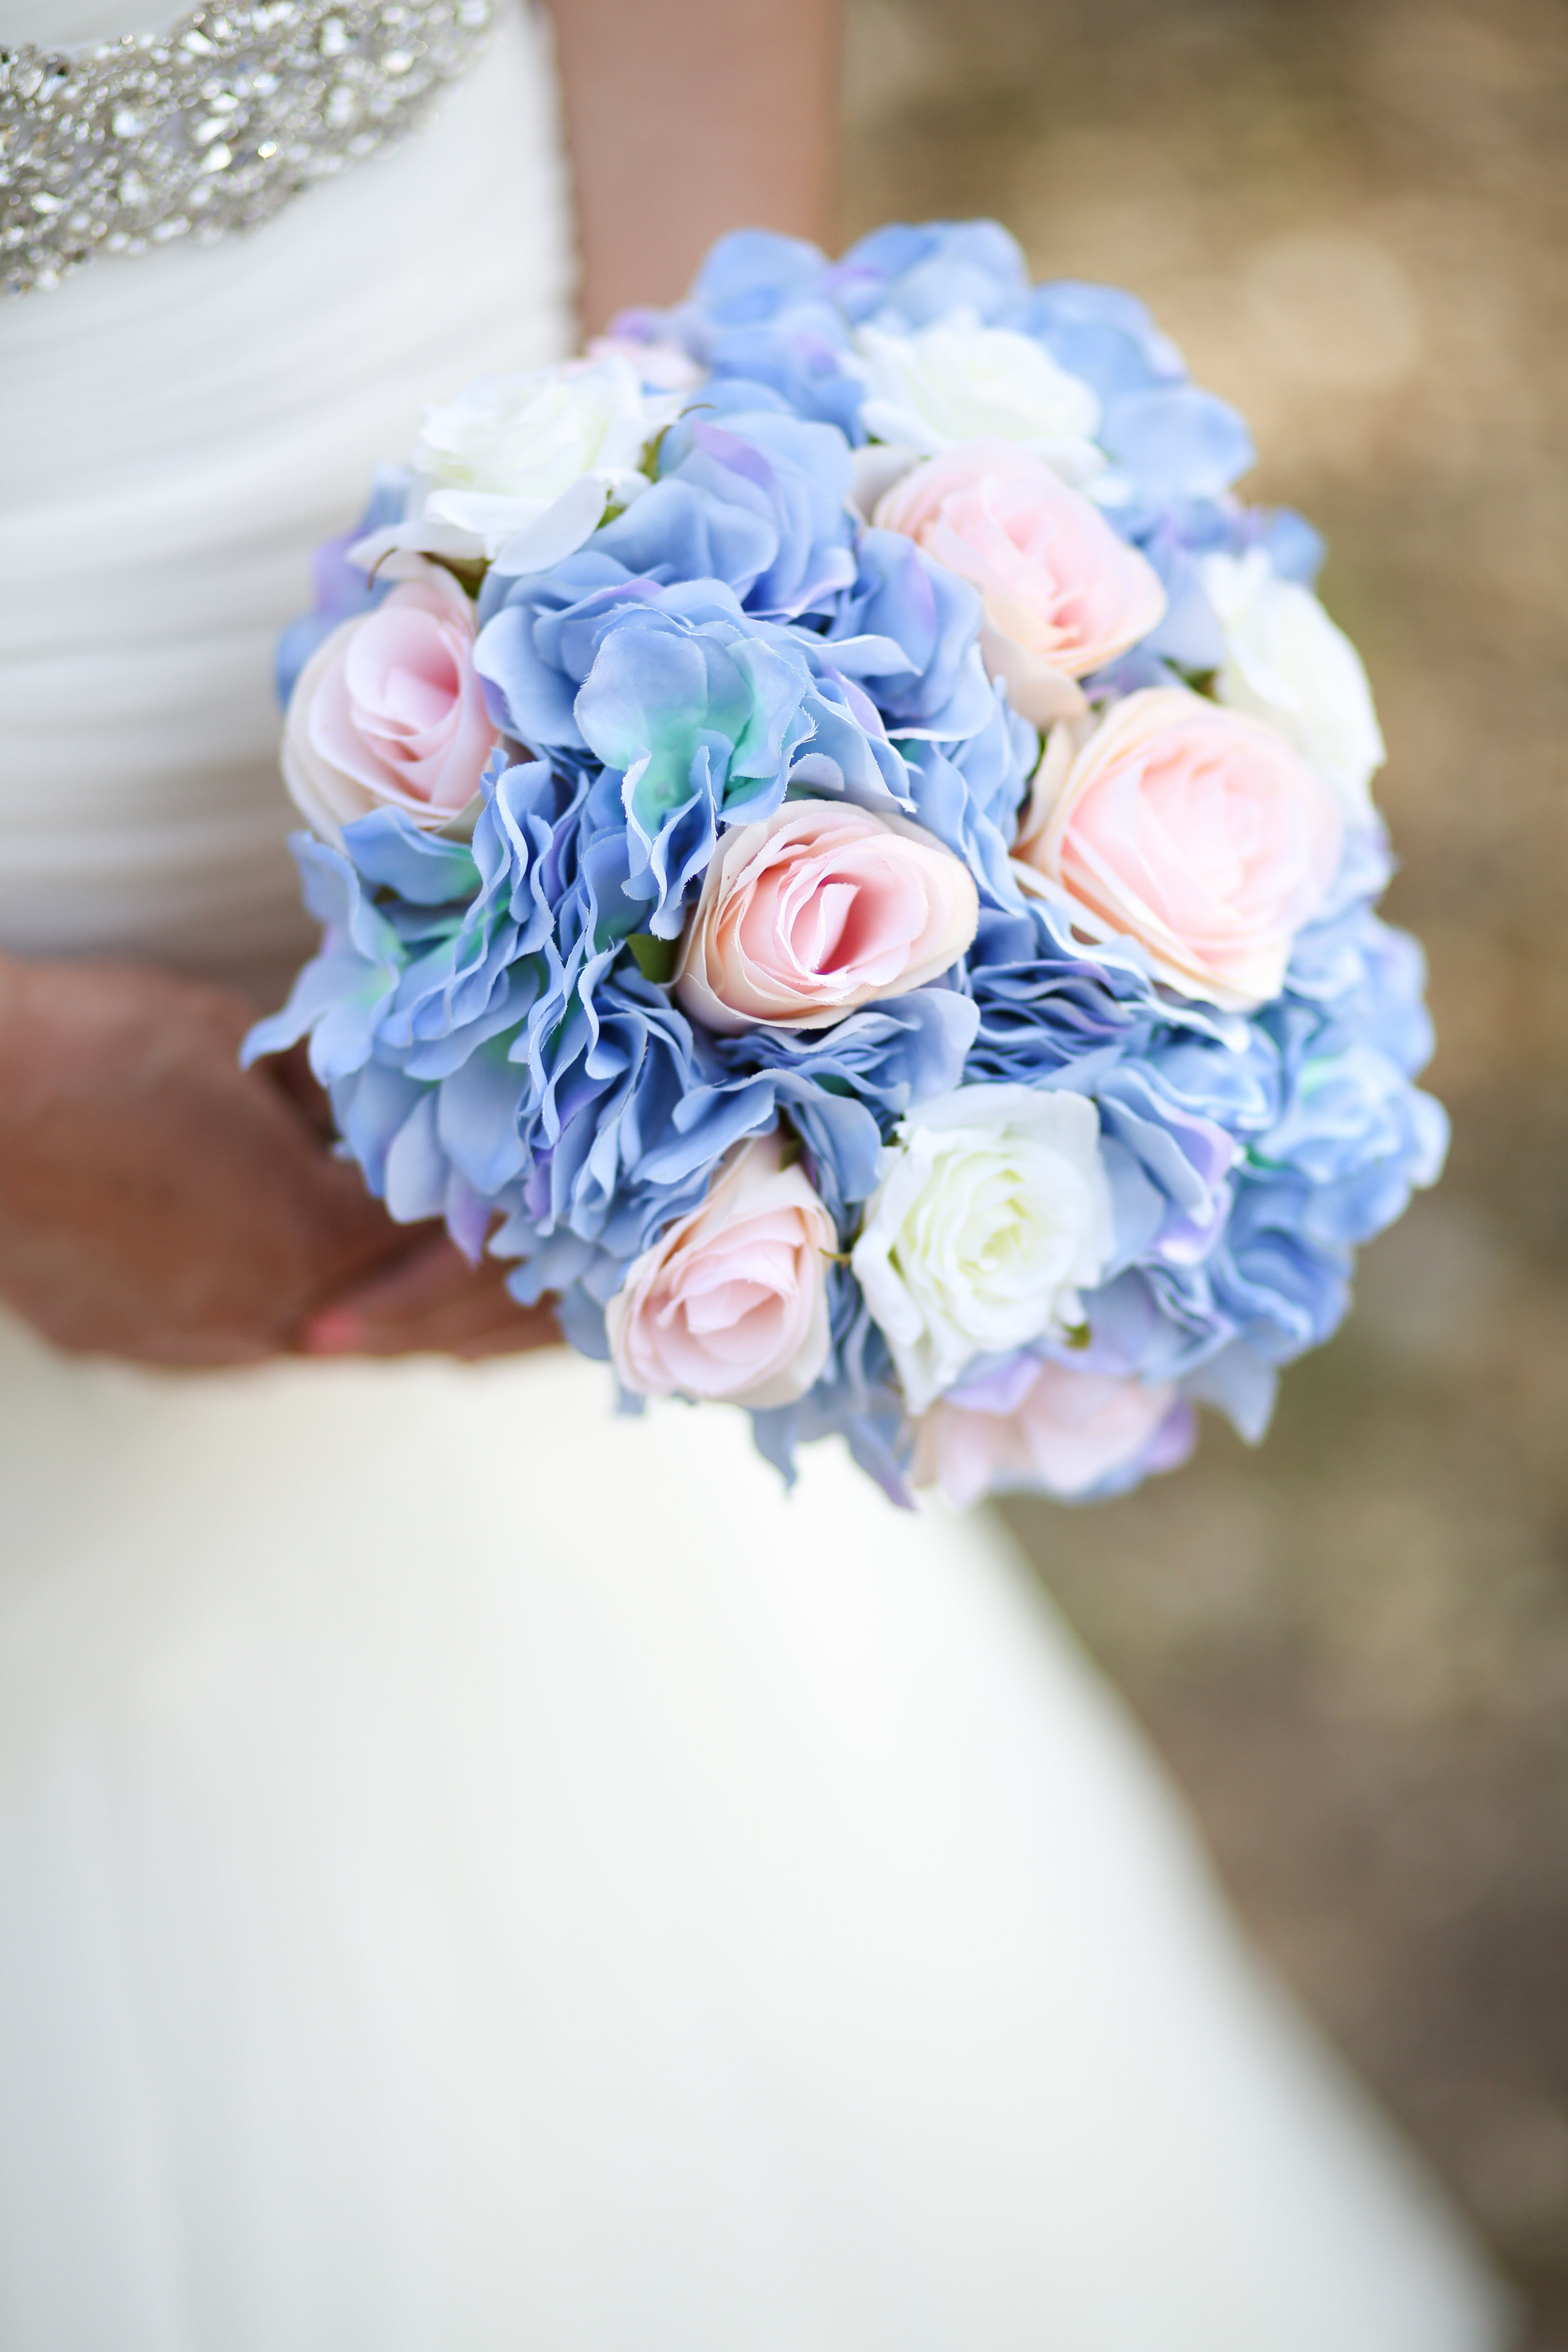 bridal-bouquet-silk-wedding-flowers.jpg